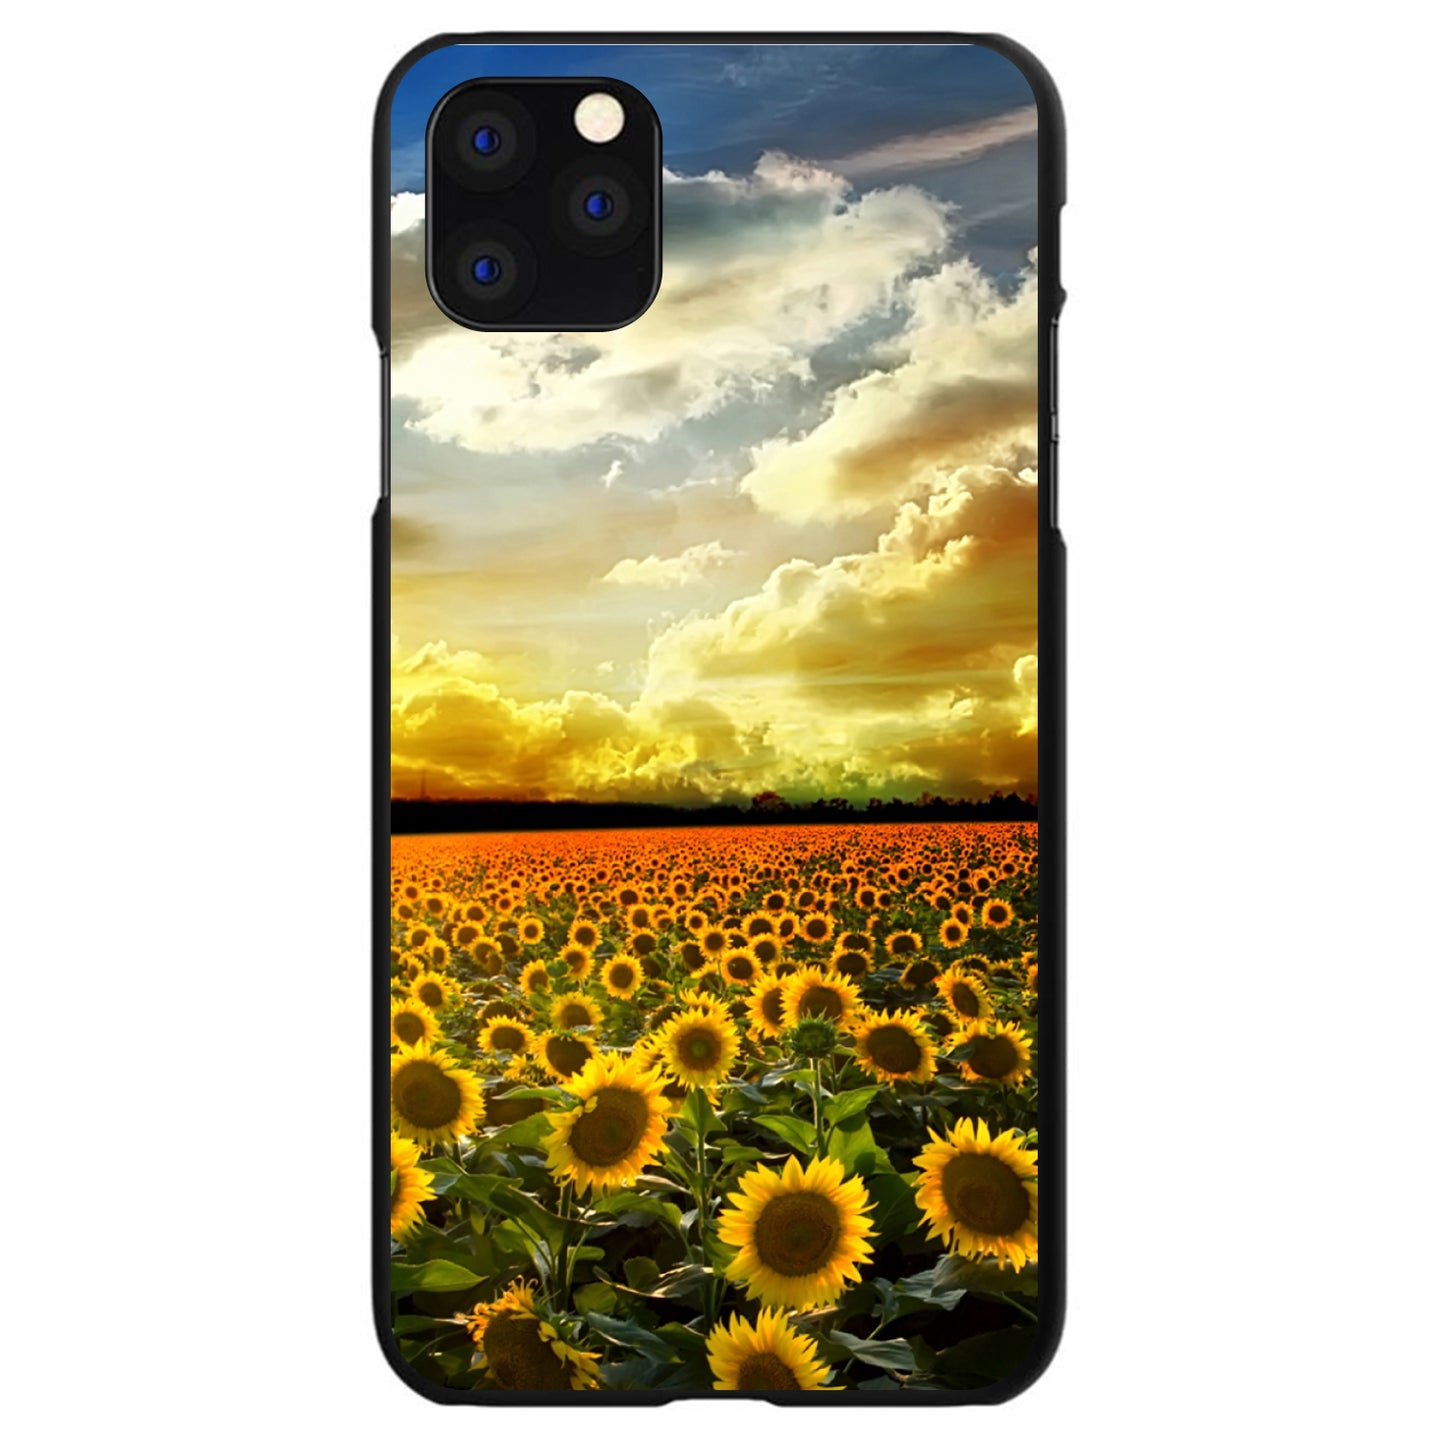 DistinctInk® Hard Plastic Snap-On Case for Apple iPhone - Green Blue Yellow Sunflowers